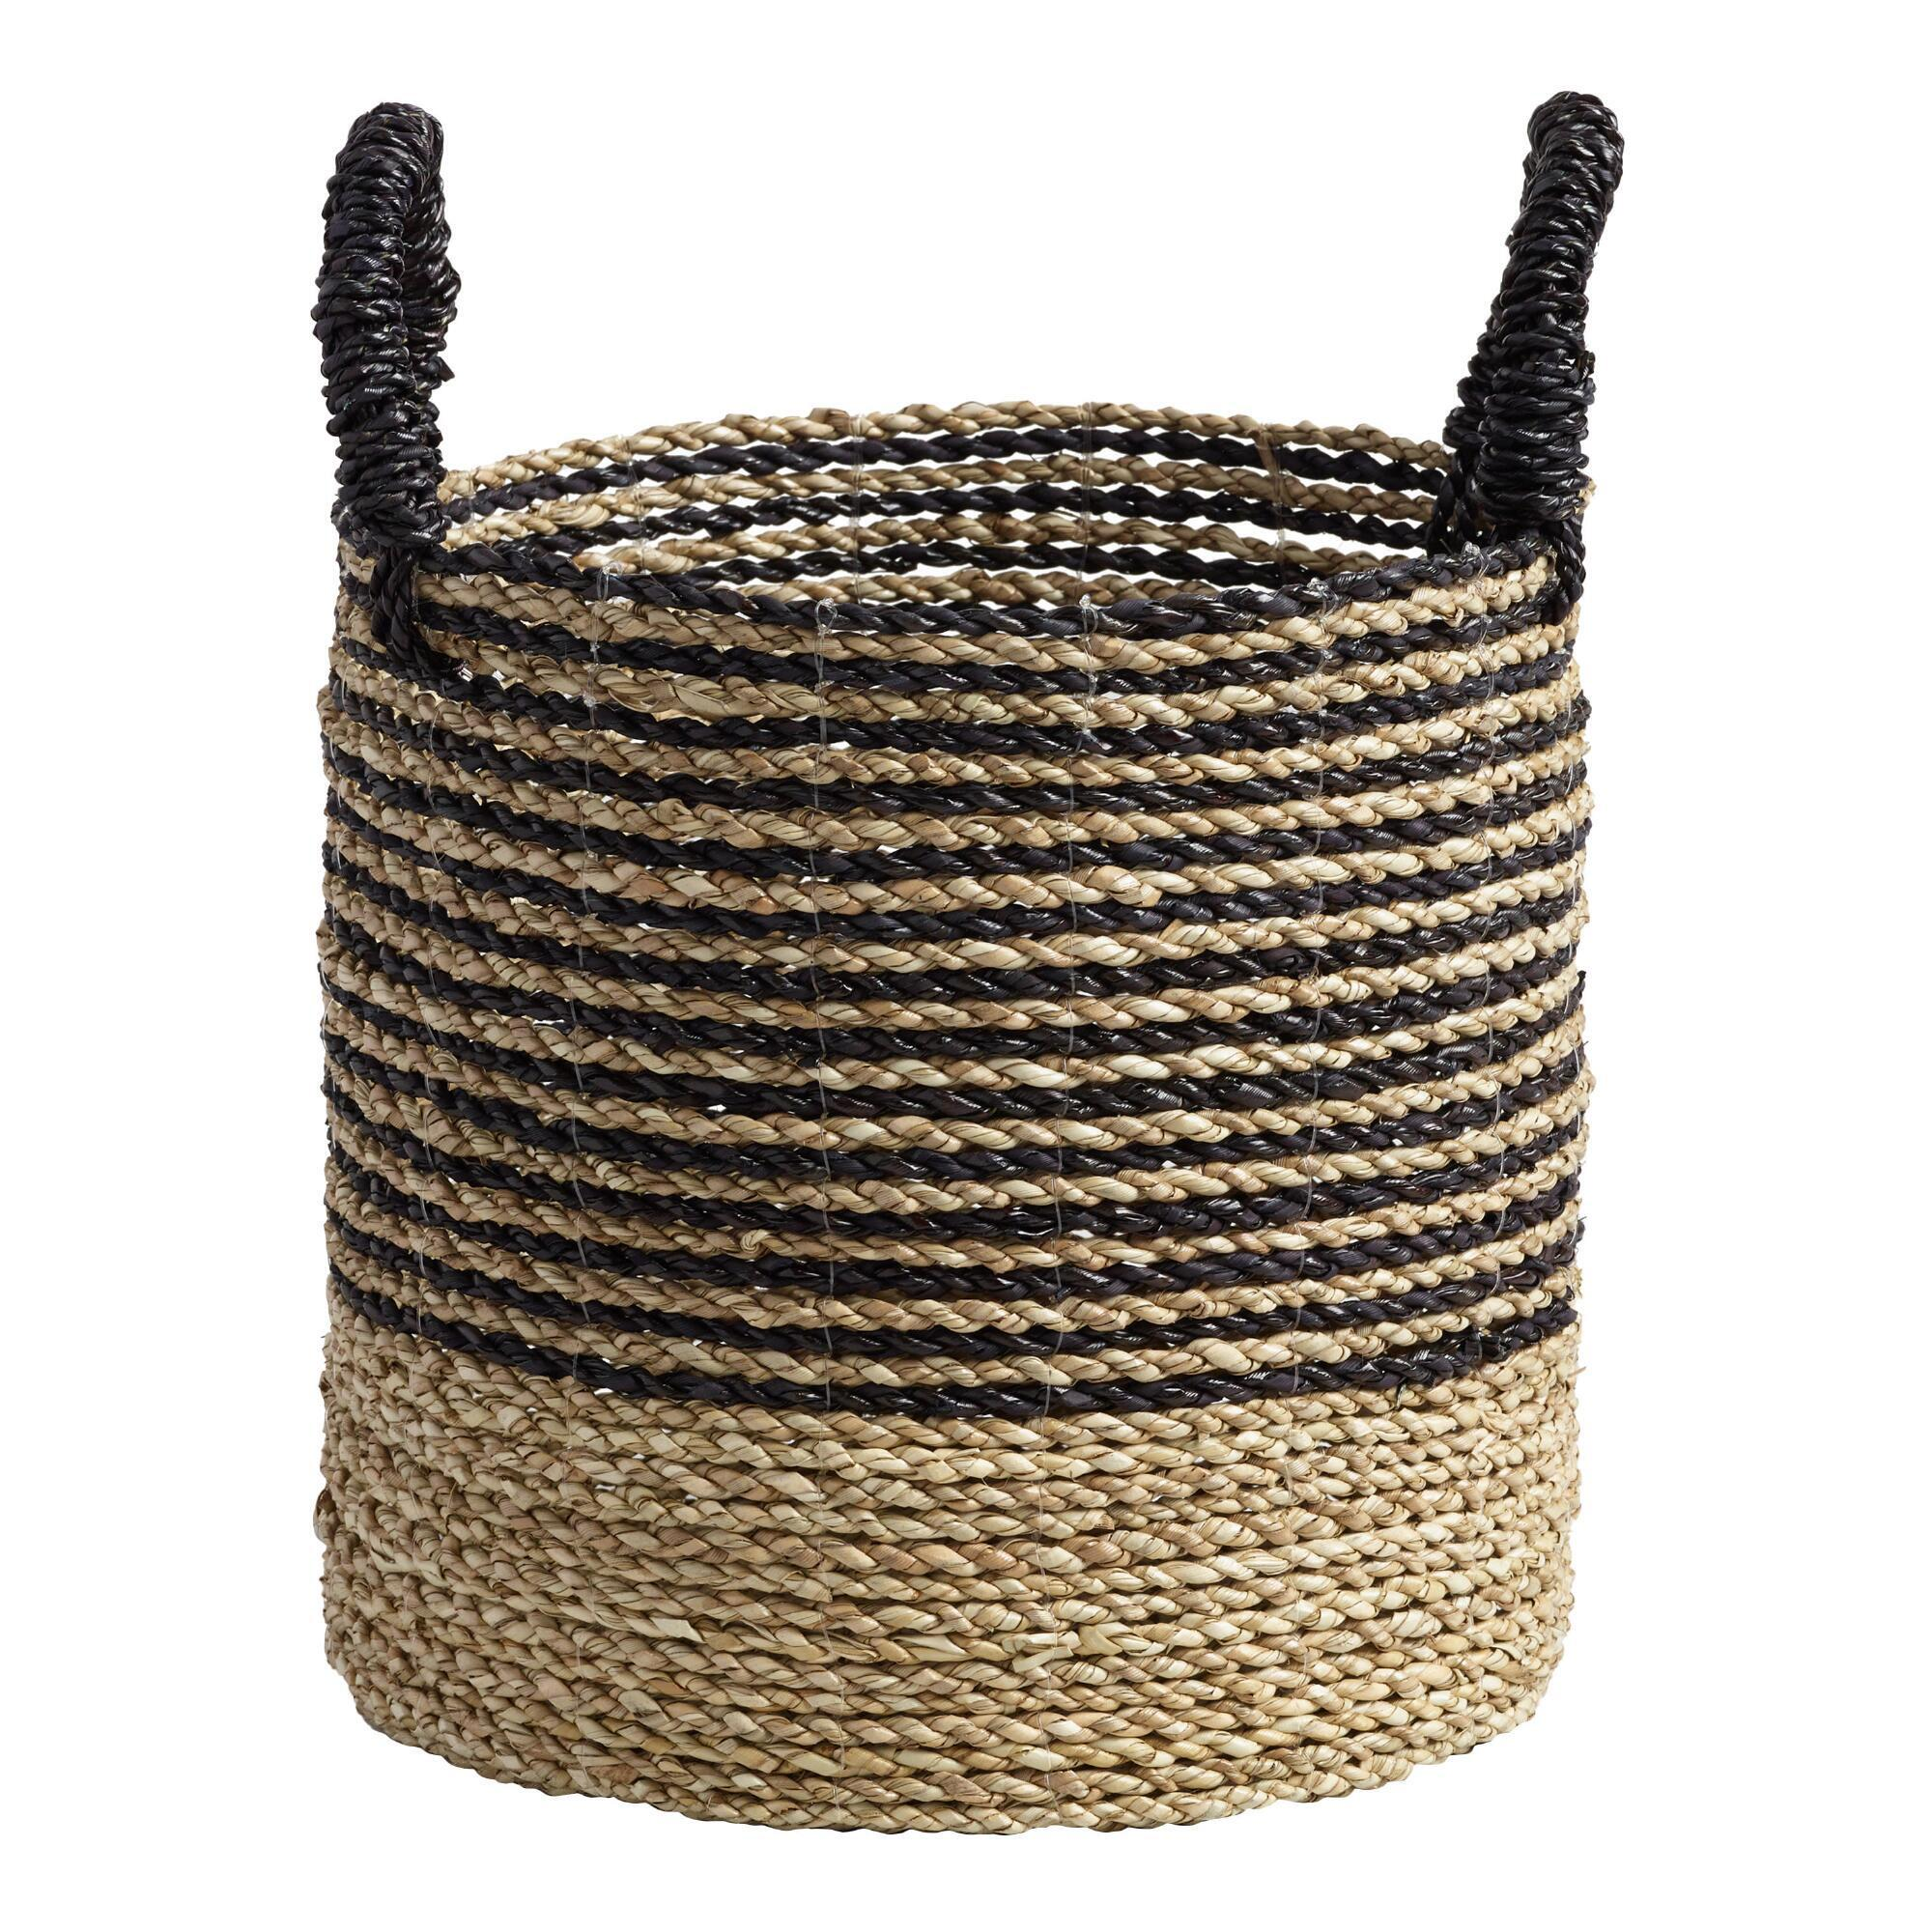 Small Black and Natural Seagrass Calista Tote Basket: Black/Natural by World Market